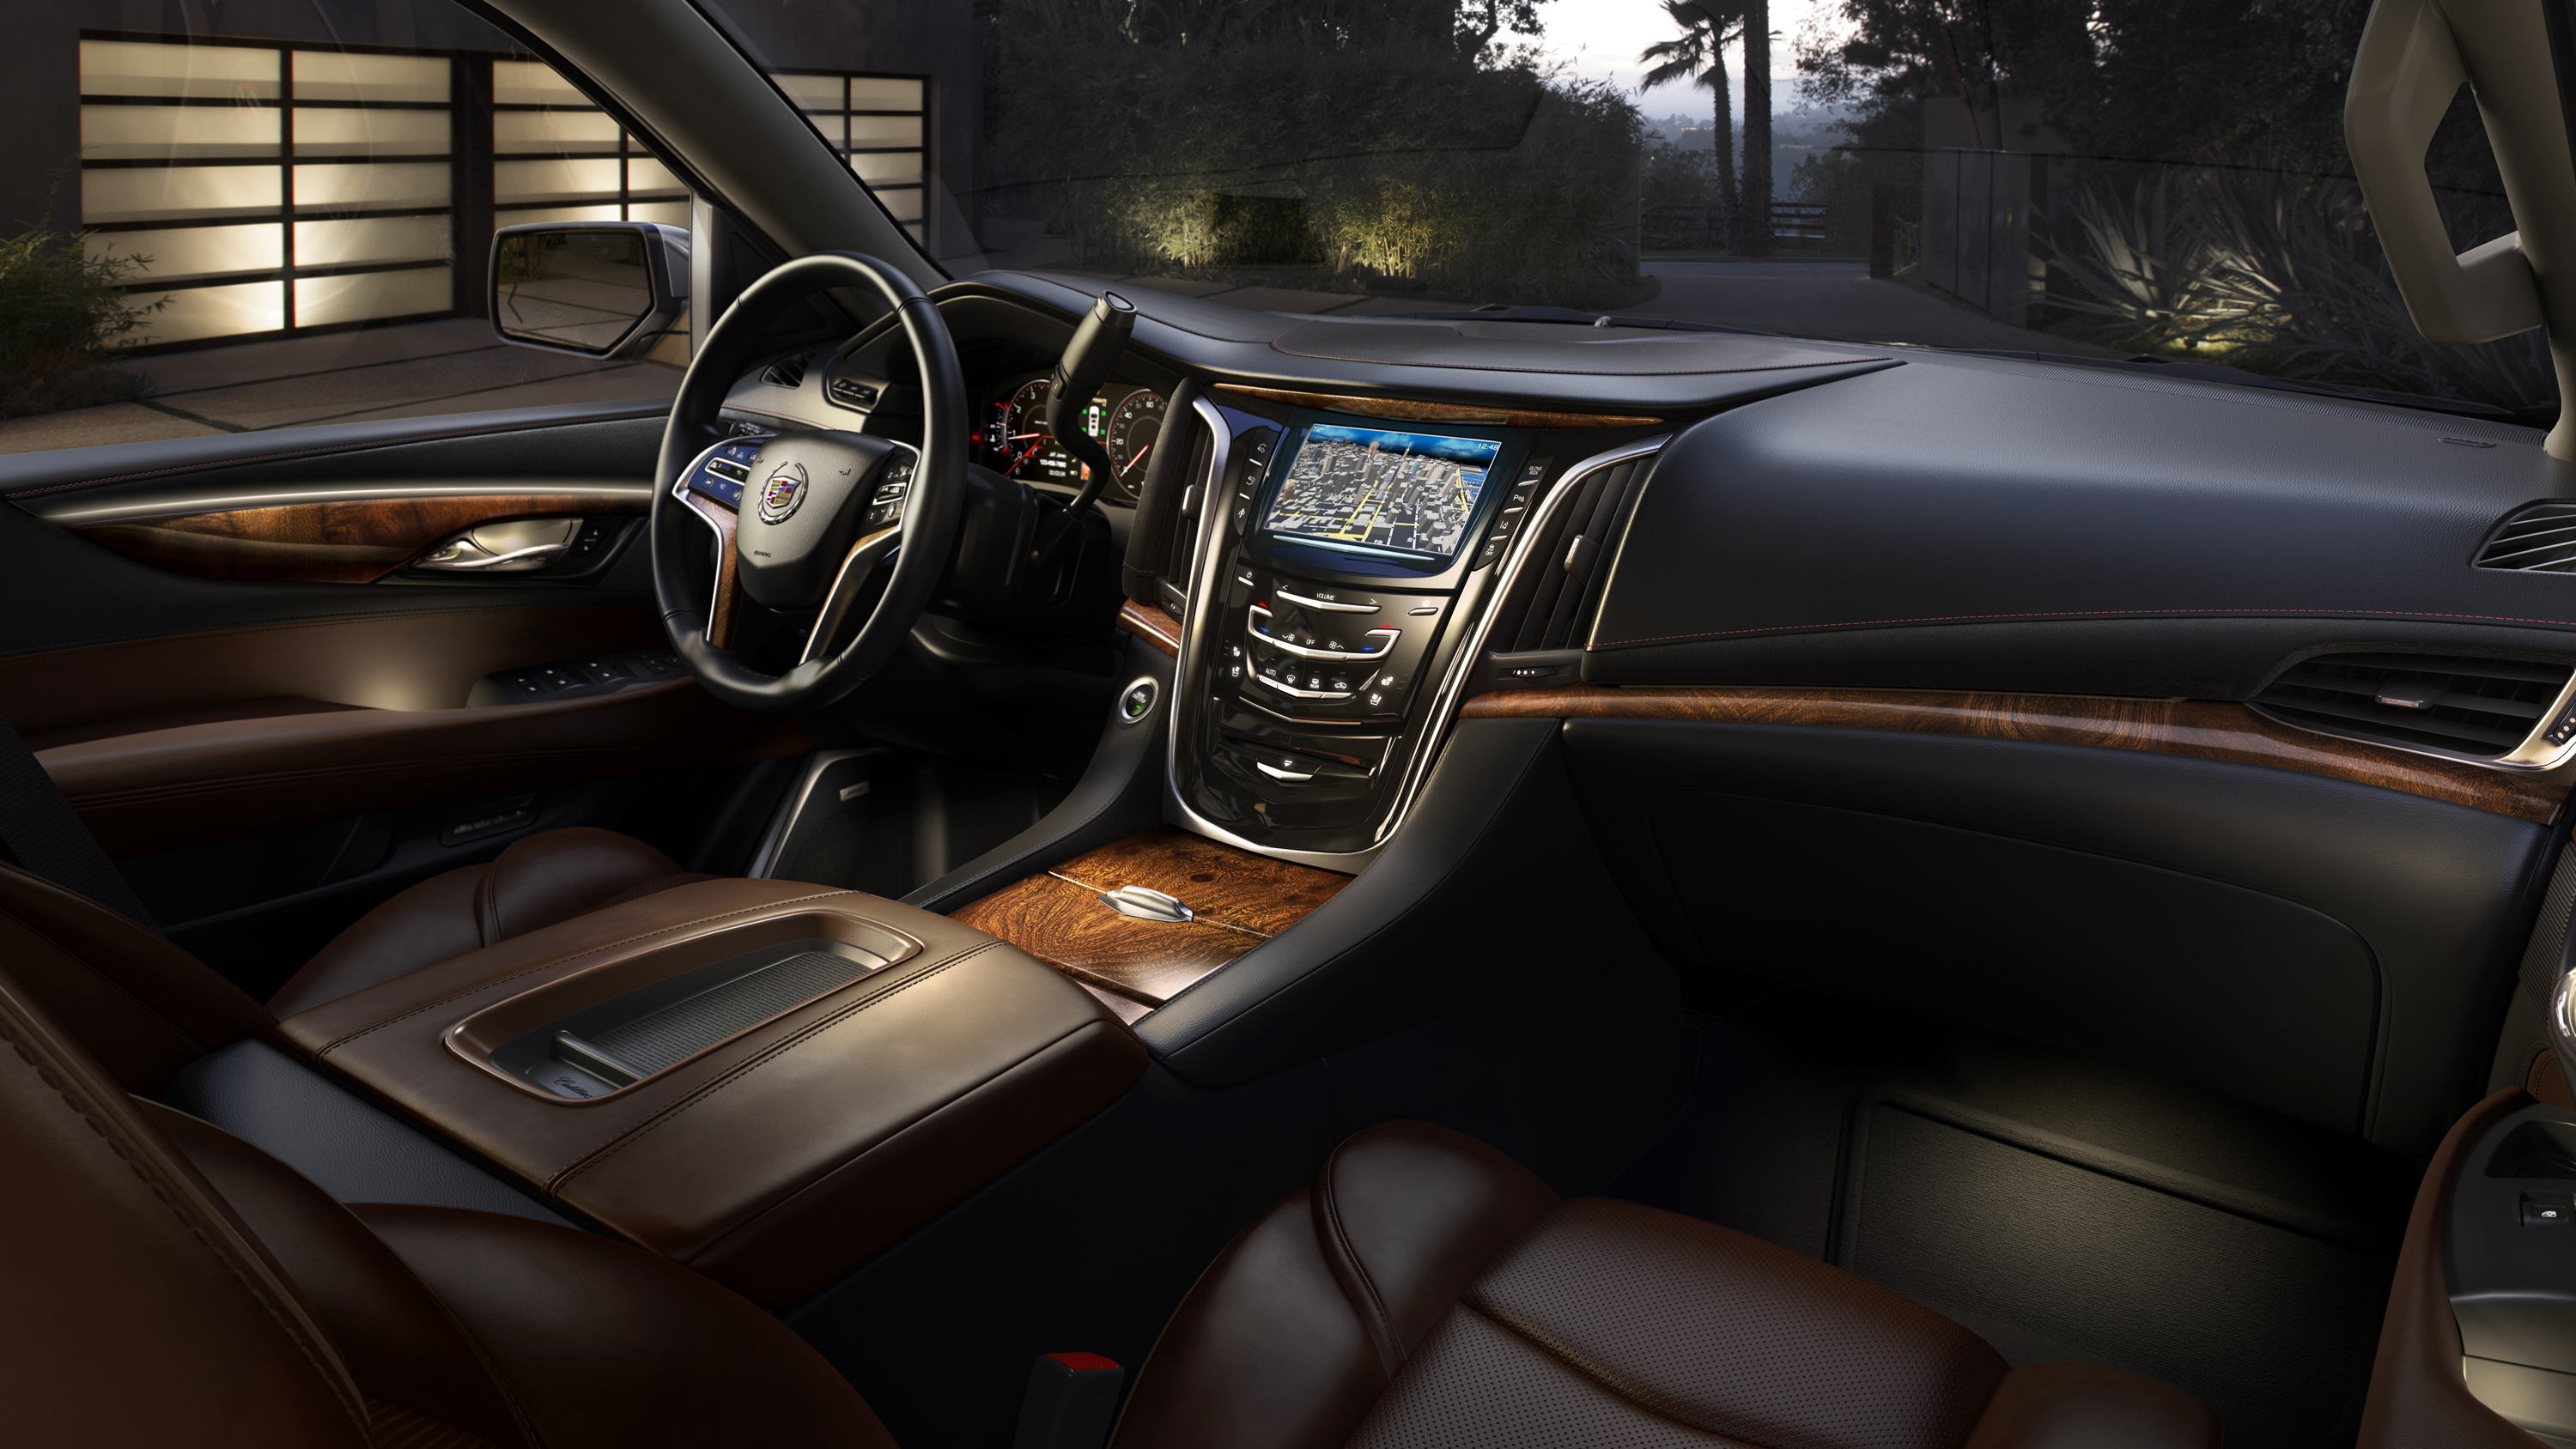 Cadillac 2015 escalade opening a new generation of luxury SUVs #2